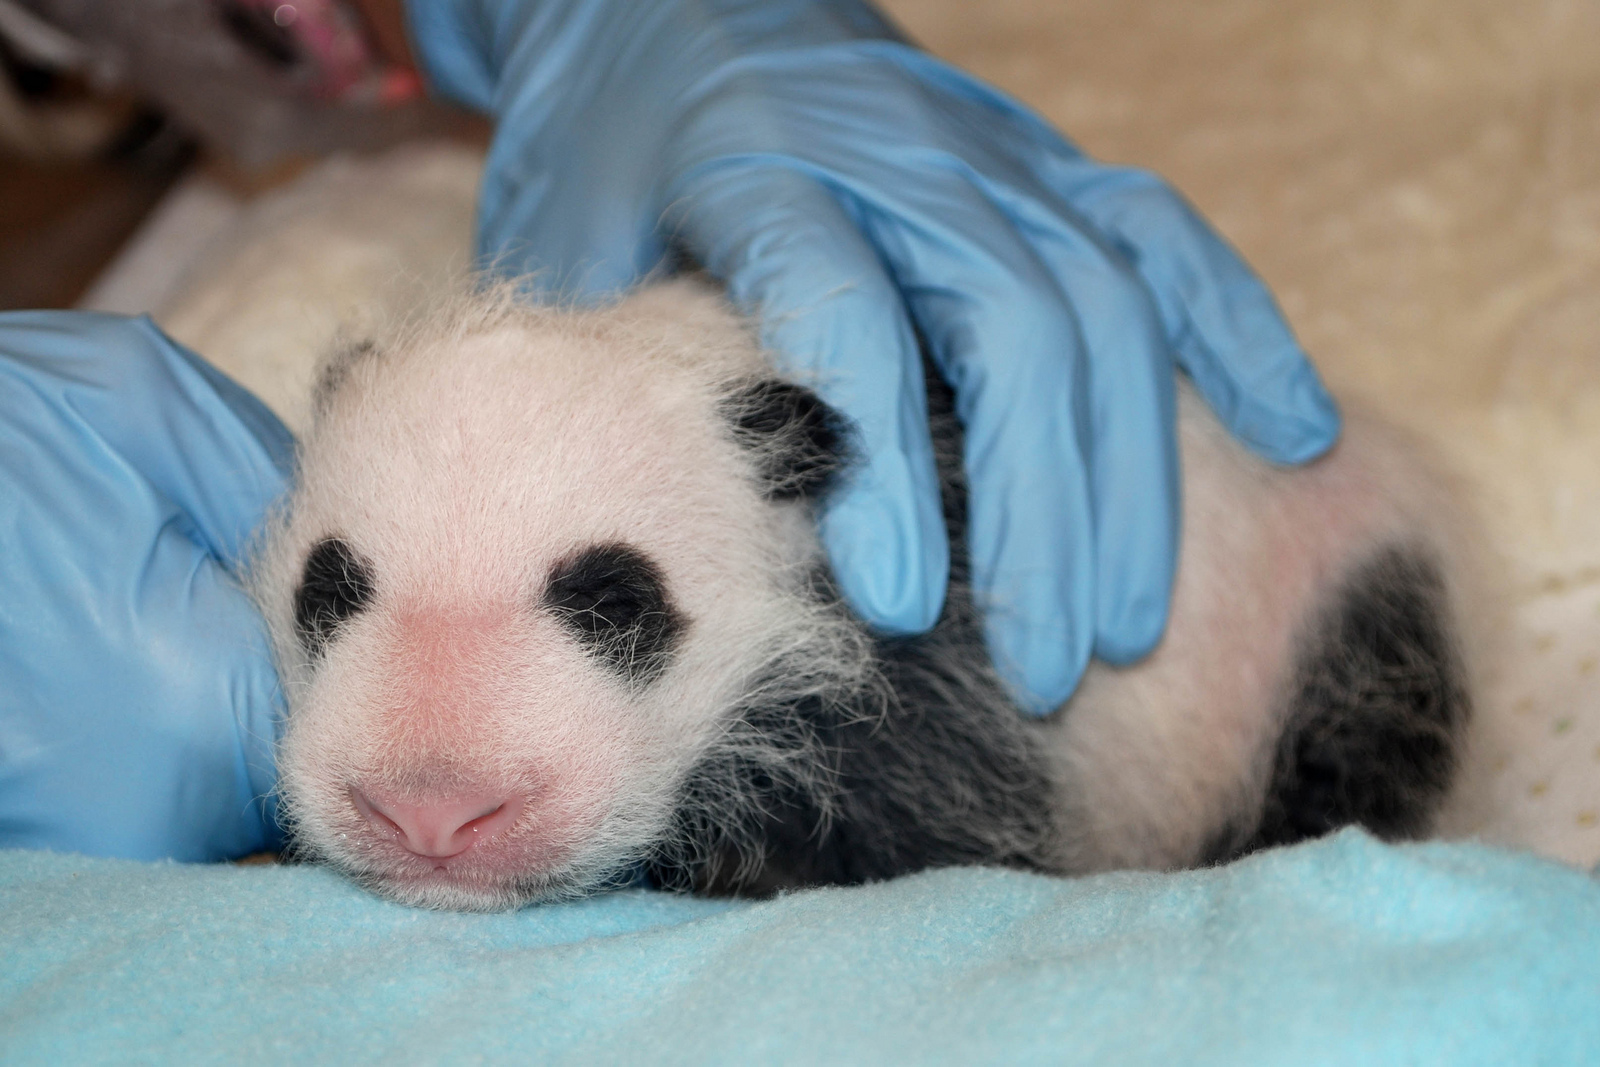 The National Zoo's new panda cub has more than doubled her weight since her preliminary health check Aug. 15, zoo officials said Tuesday. (Photo: Smithsonian's National Zoo)